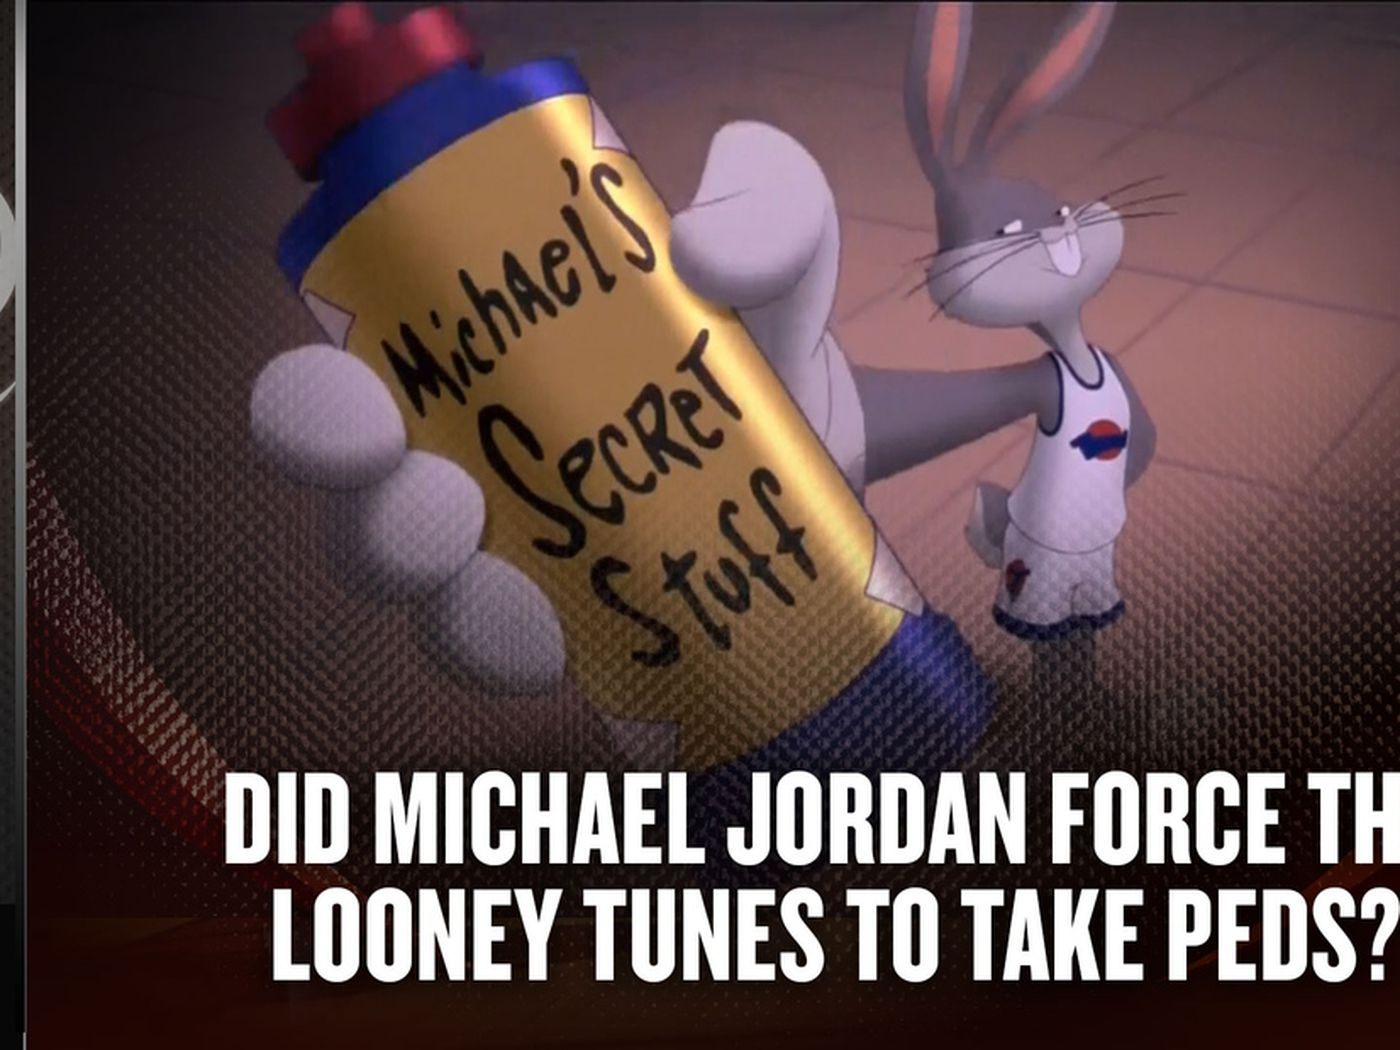 c9acc6ae85dc How Michael Jordan and the Looney Tunes won in Space Jam - SBNation.com